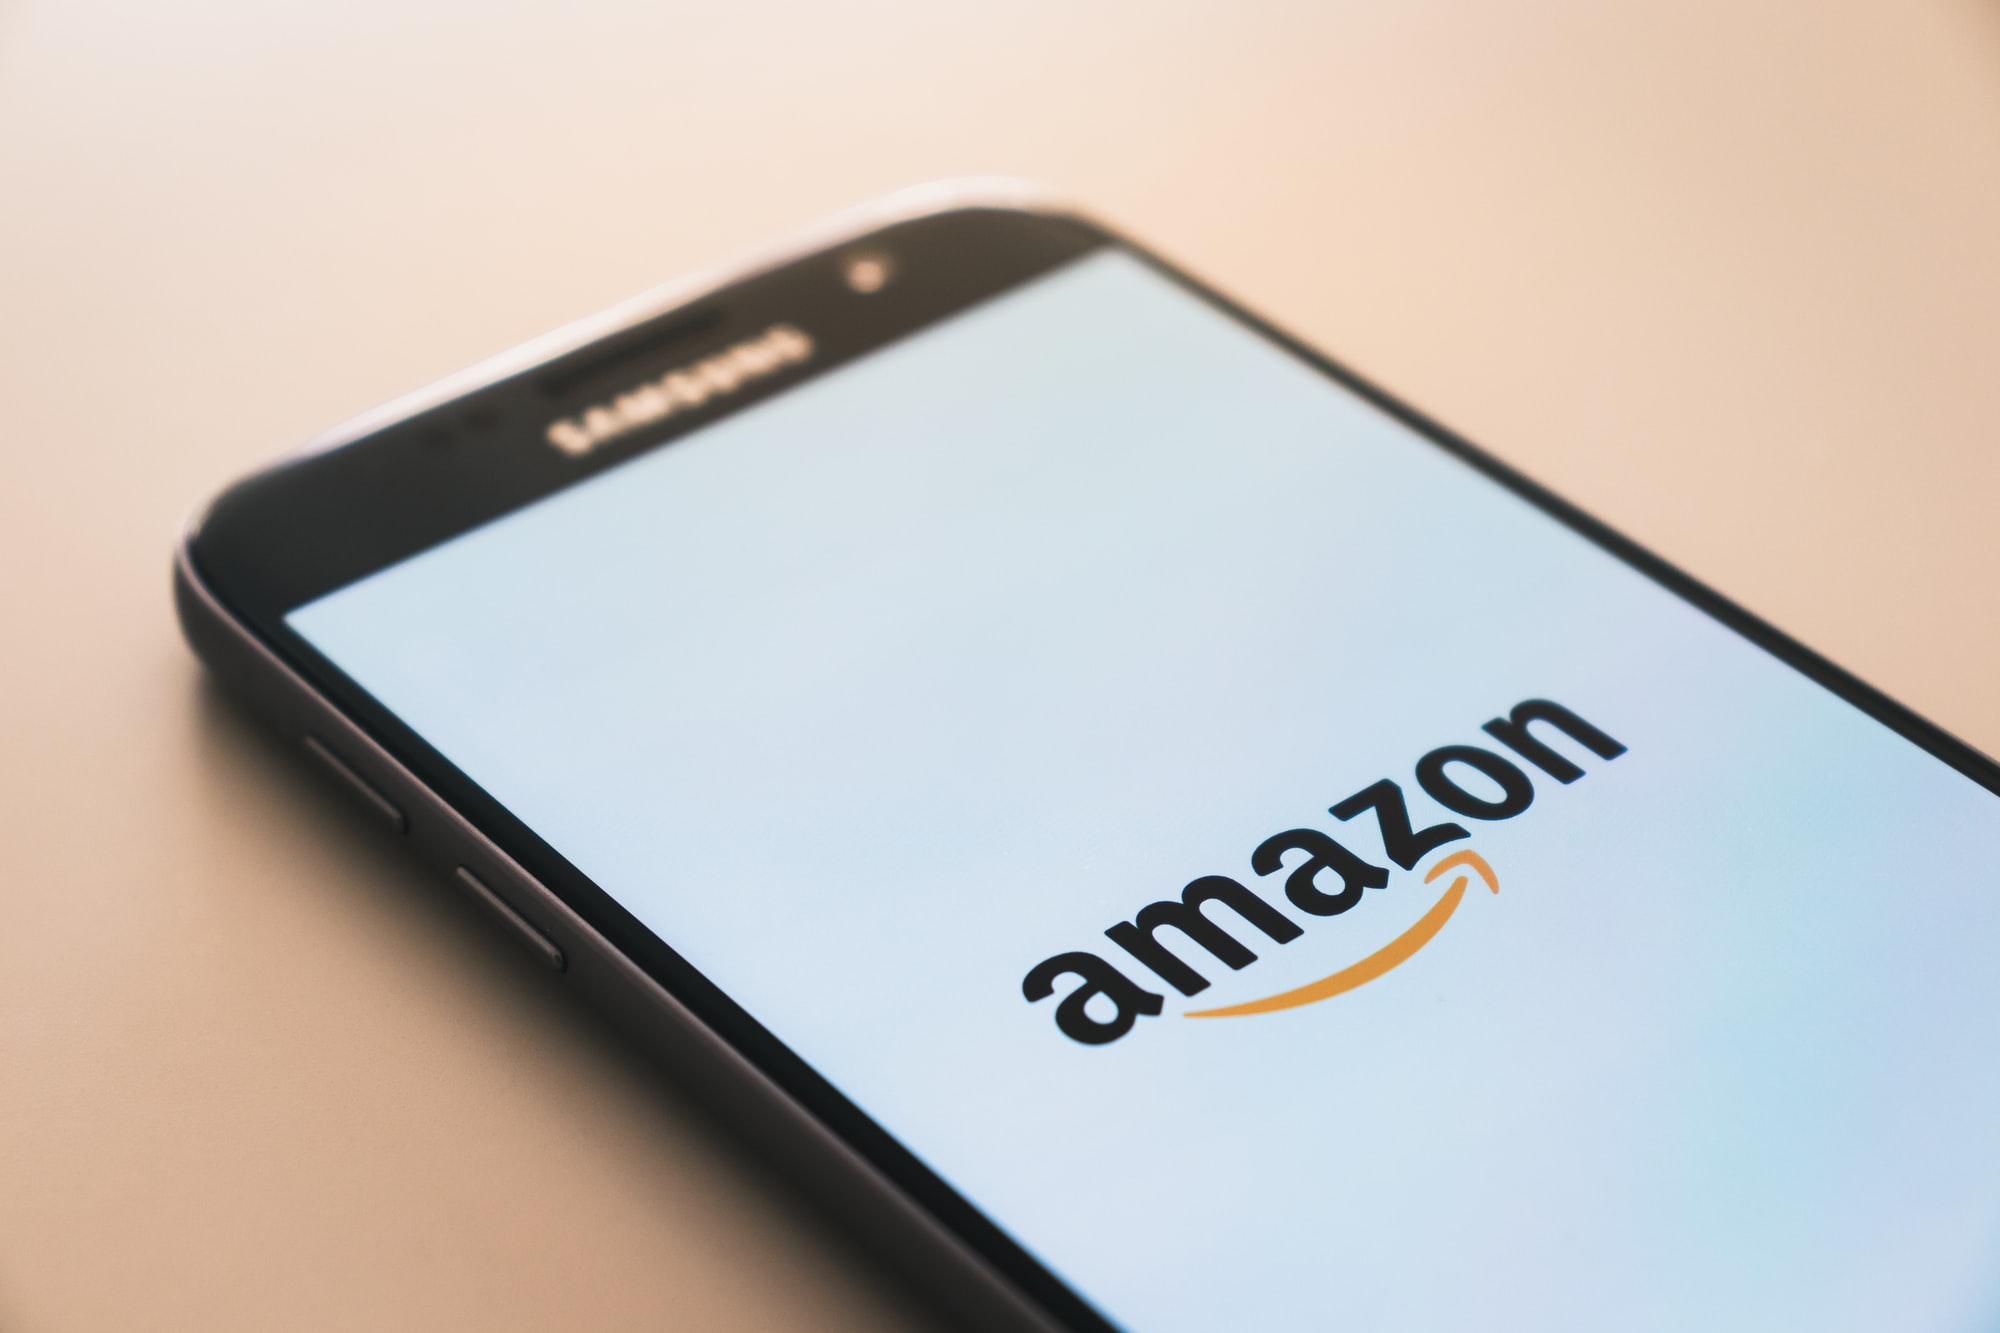 Amazon will market Next Insurance digital coverage for SMEs